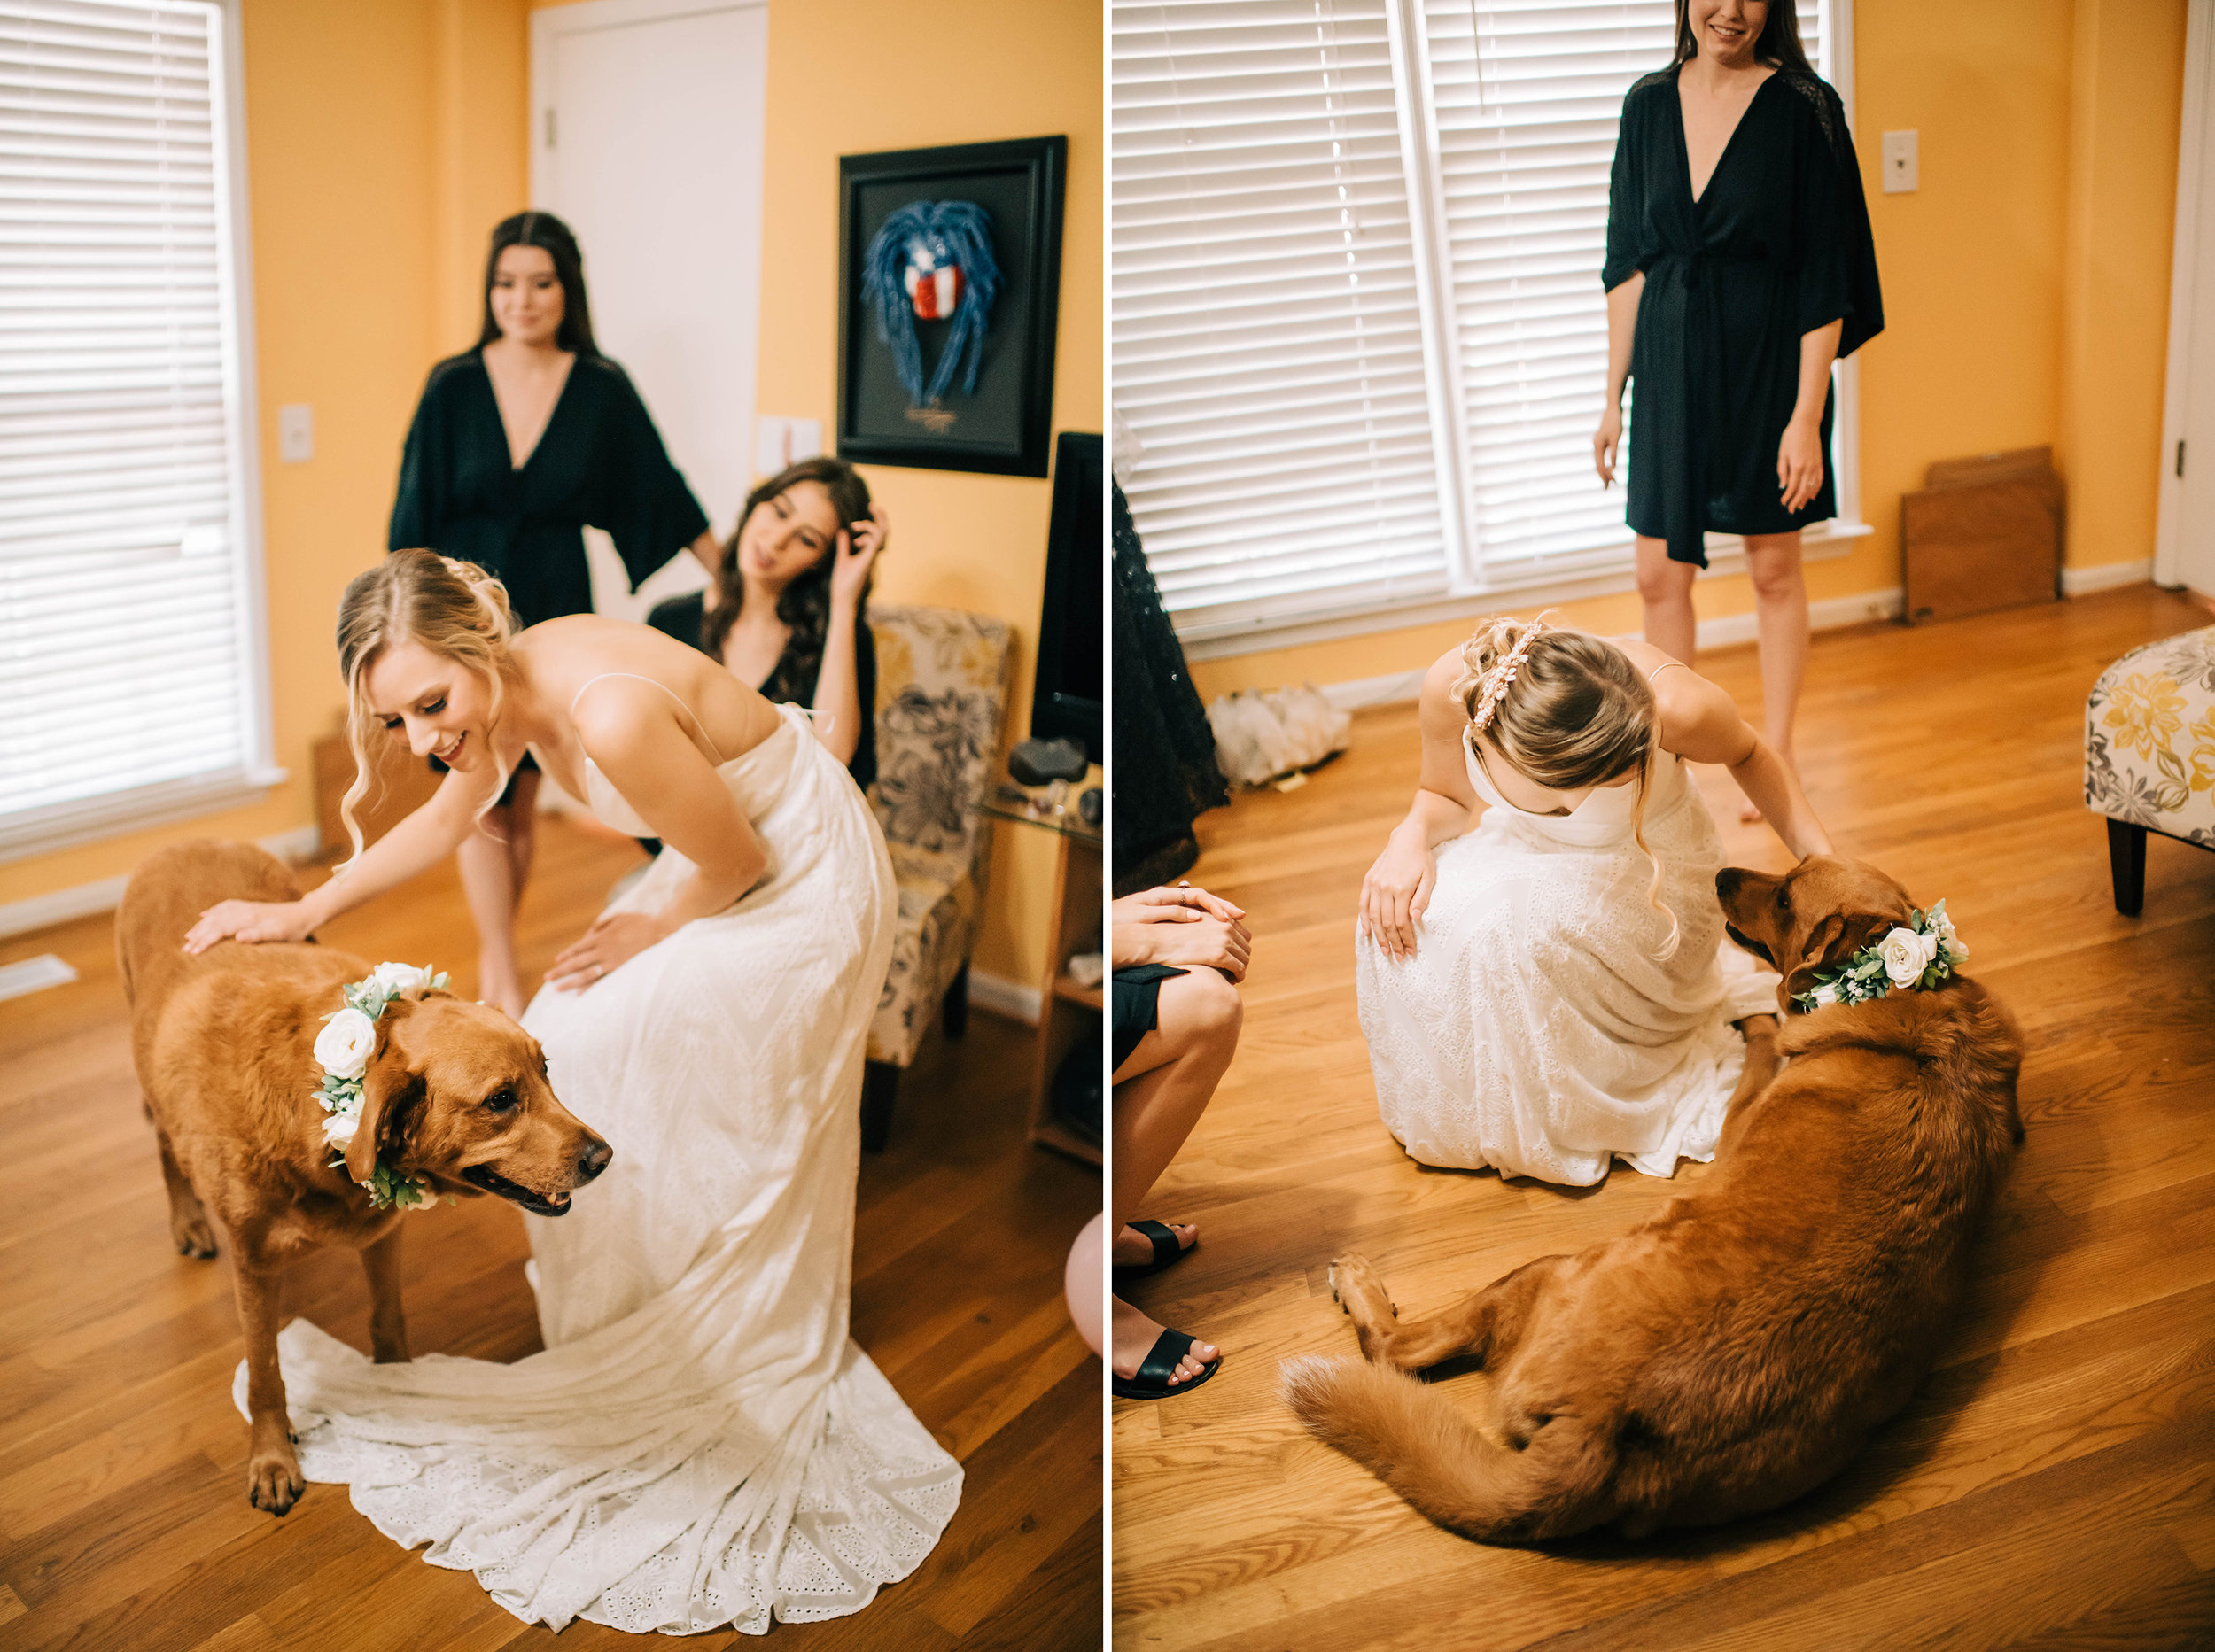 atlanta backyard wedding bay area oakland san francisco engagement wedding nontraditional fun creative eclectic photographer magic-90.jpg